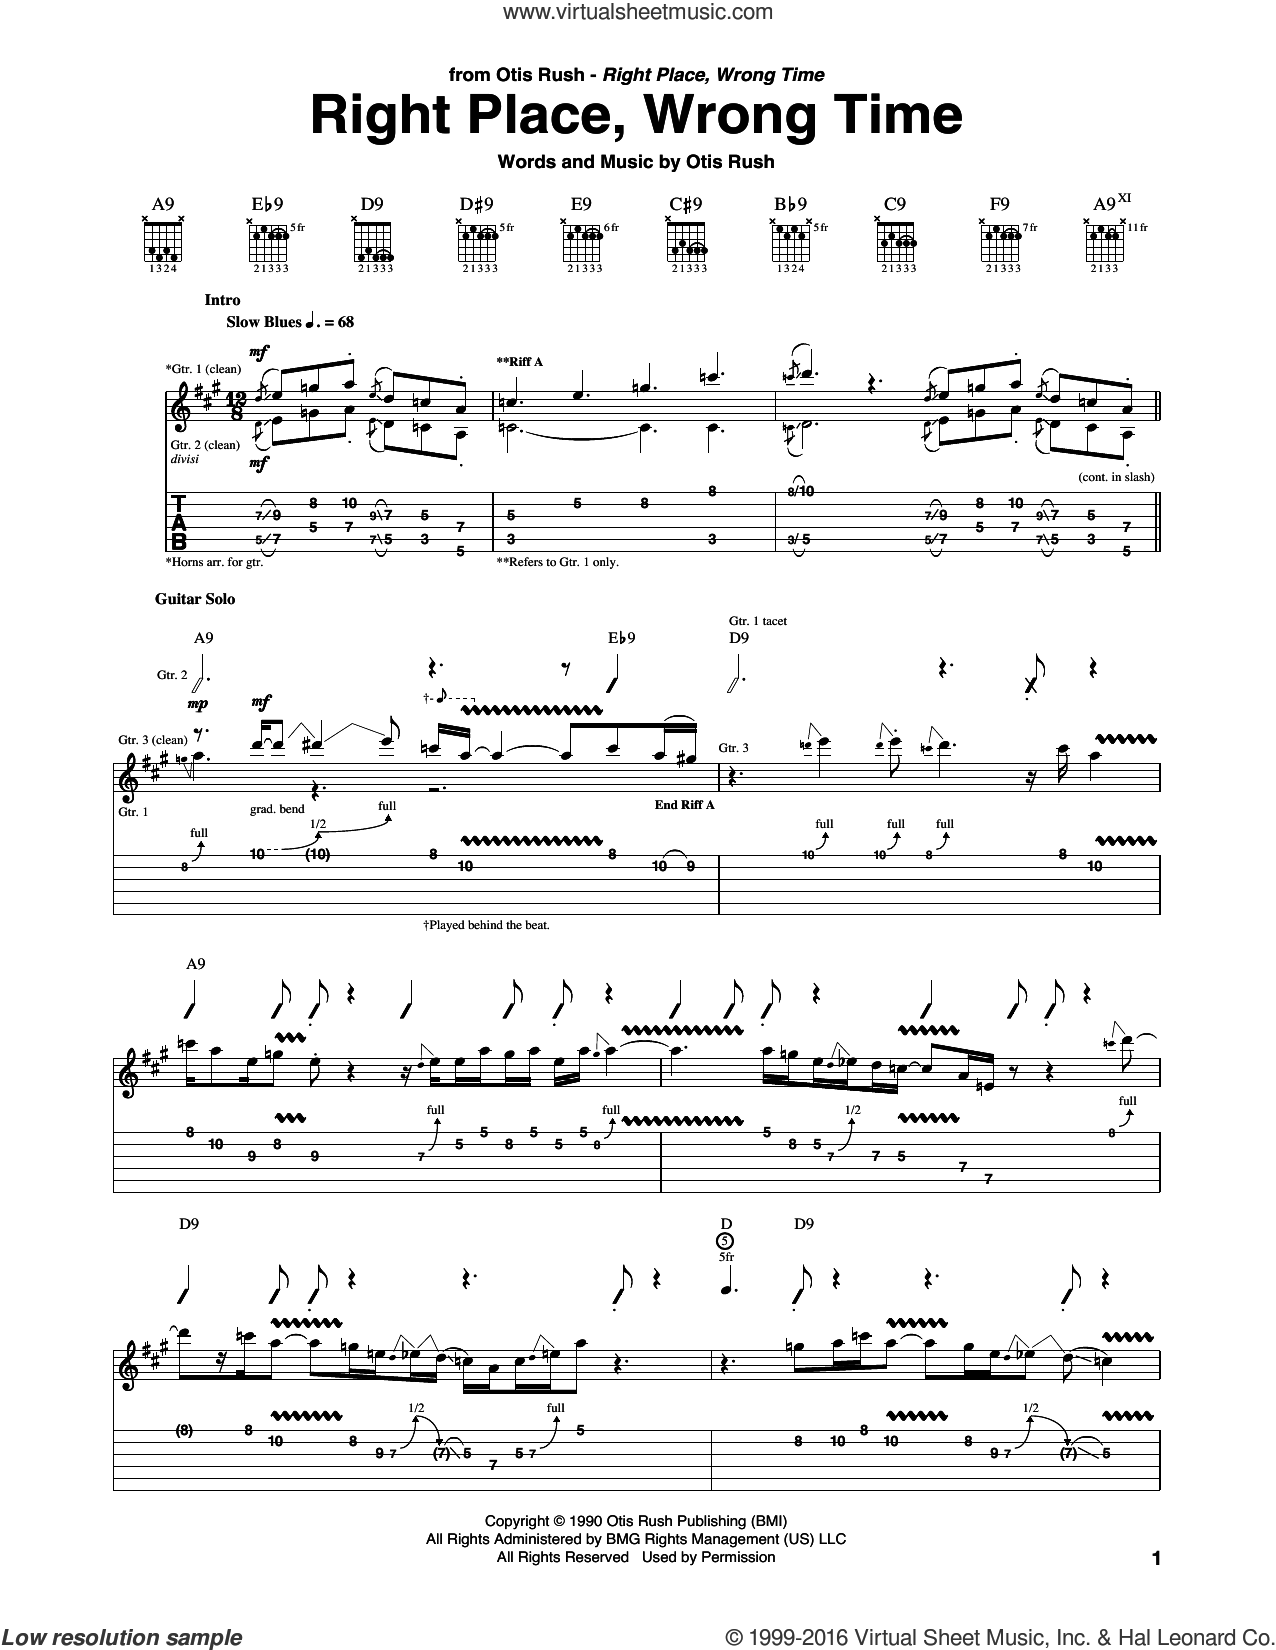 Right Place, Wrong Time sheet music for guitar (tablature) by Otis Rush, intermediate guitar (tablature). Score Image Preview.